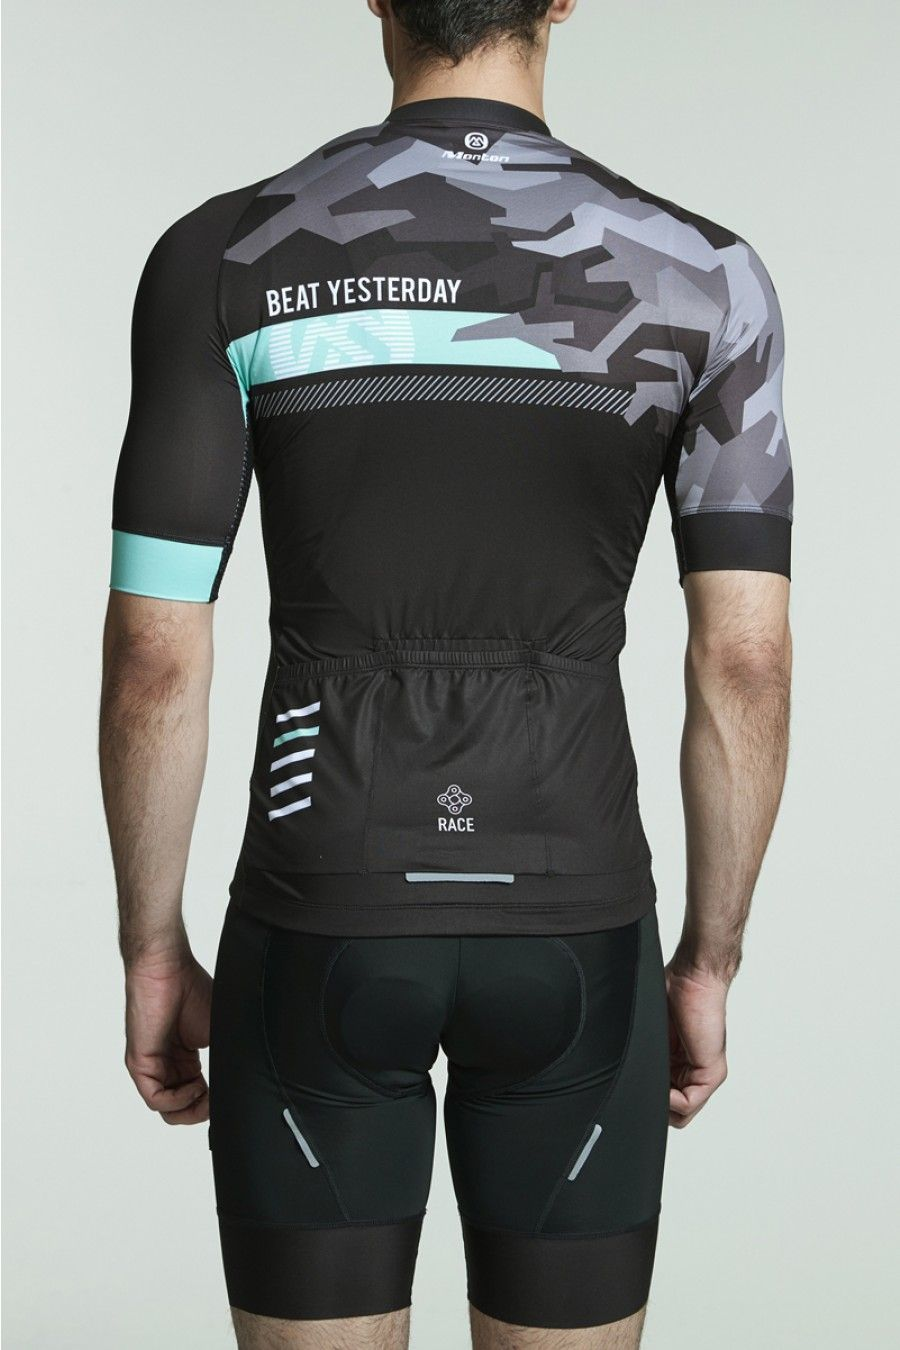 854cefcfef5 Pin by YesEcart on Cycling | Cycling outfit, Cycling tops, Cycling ...